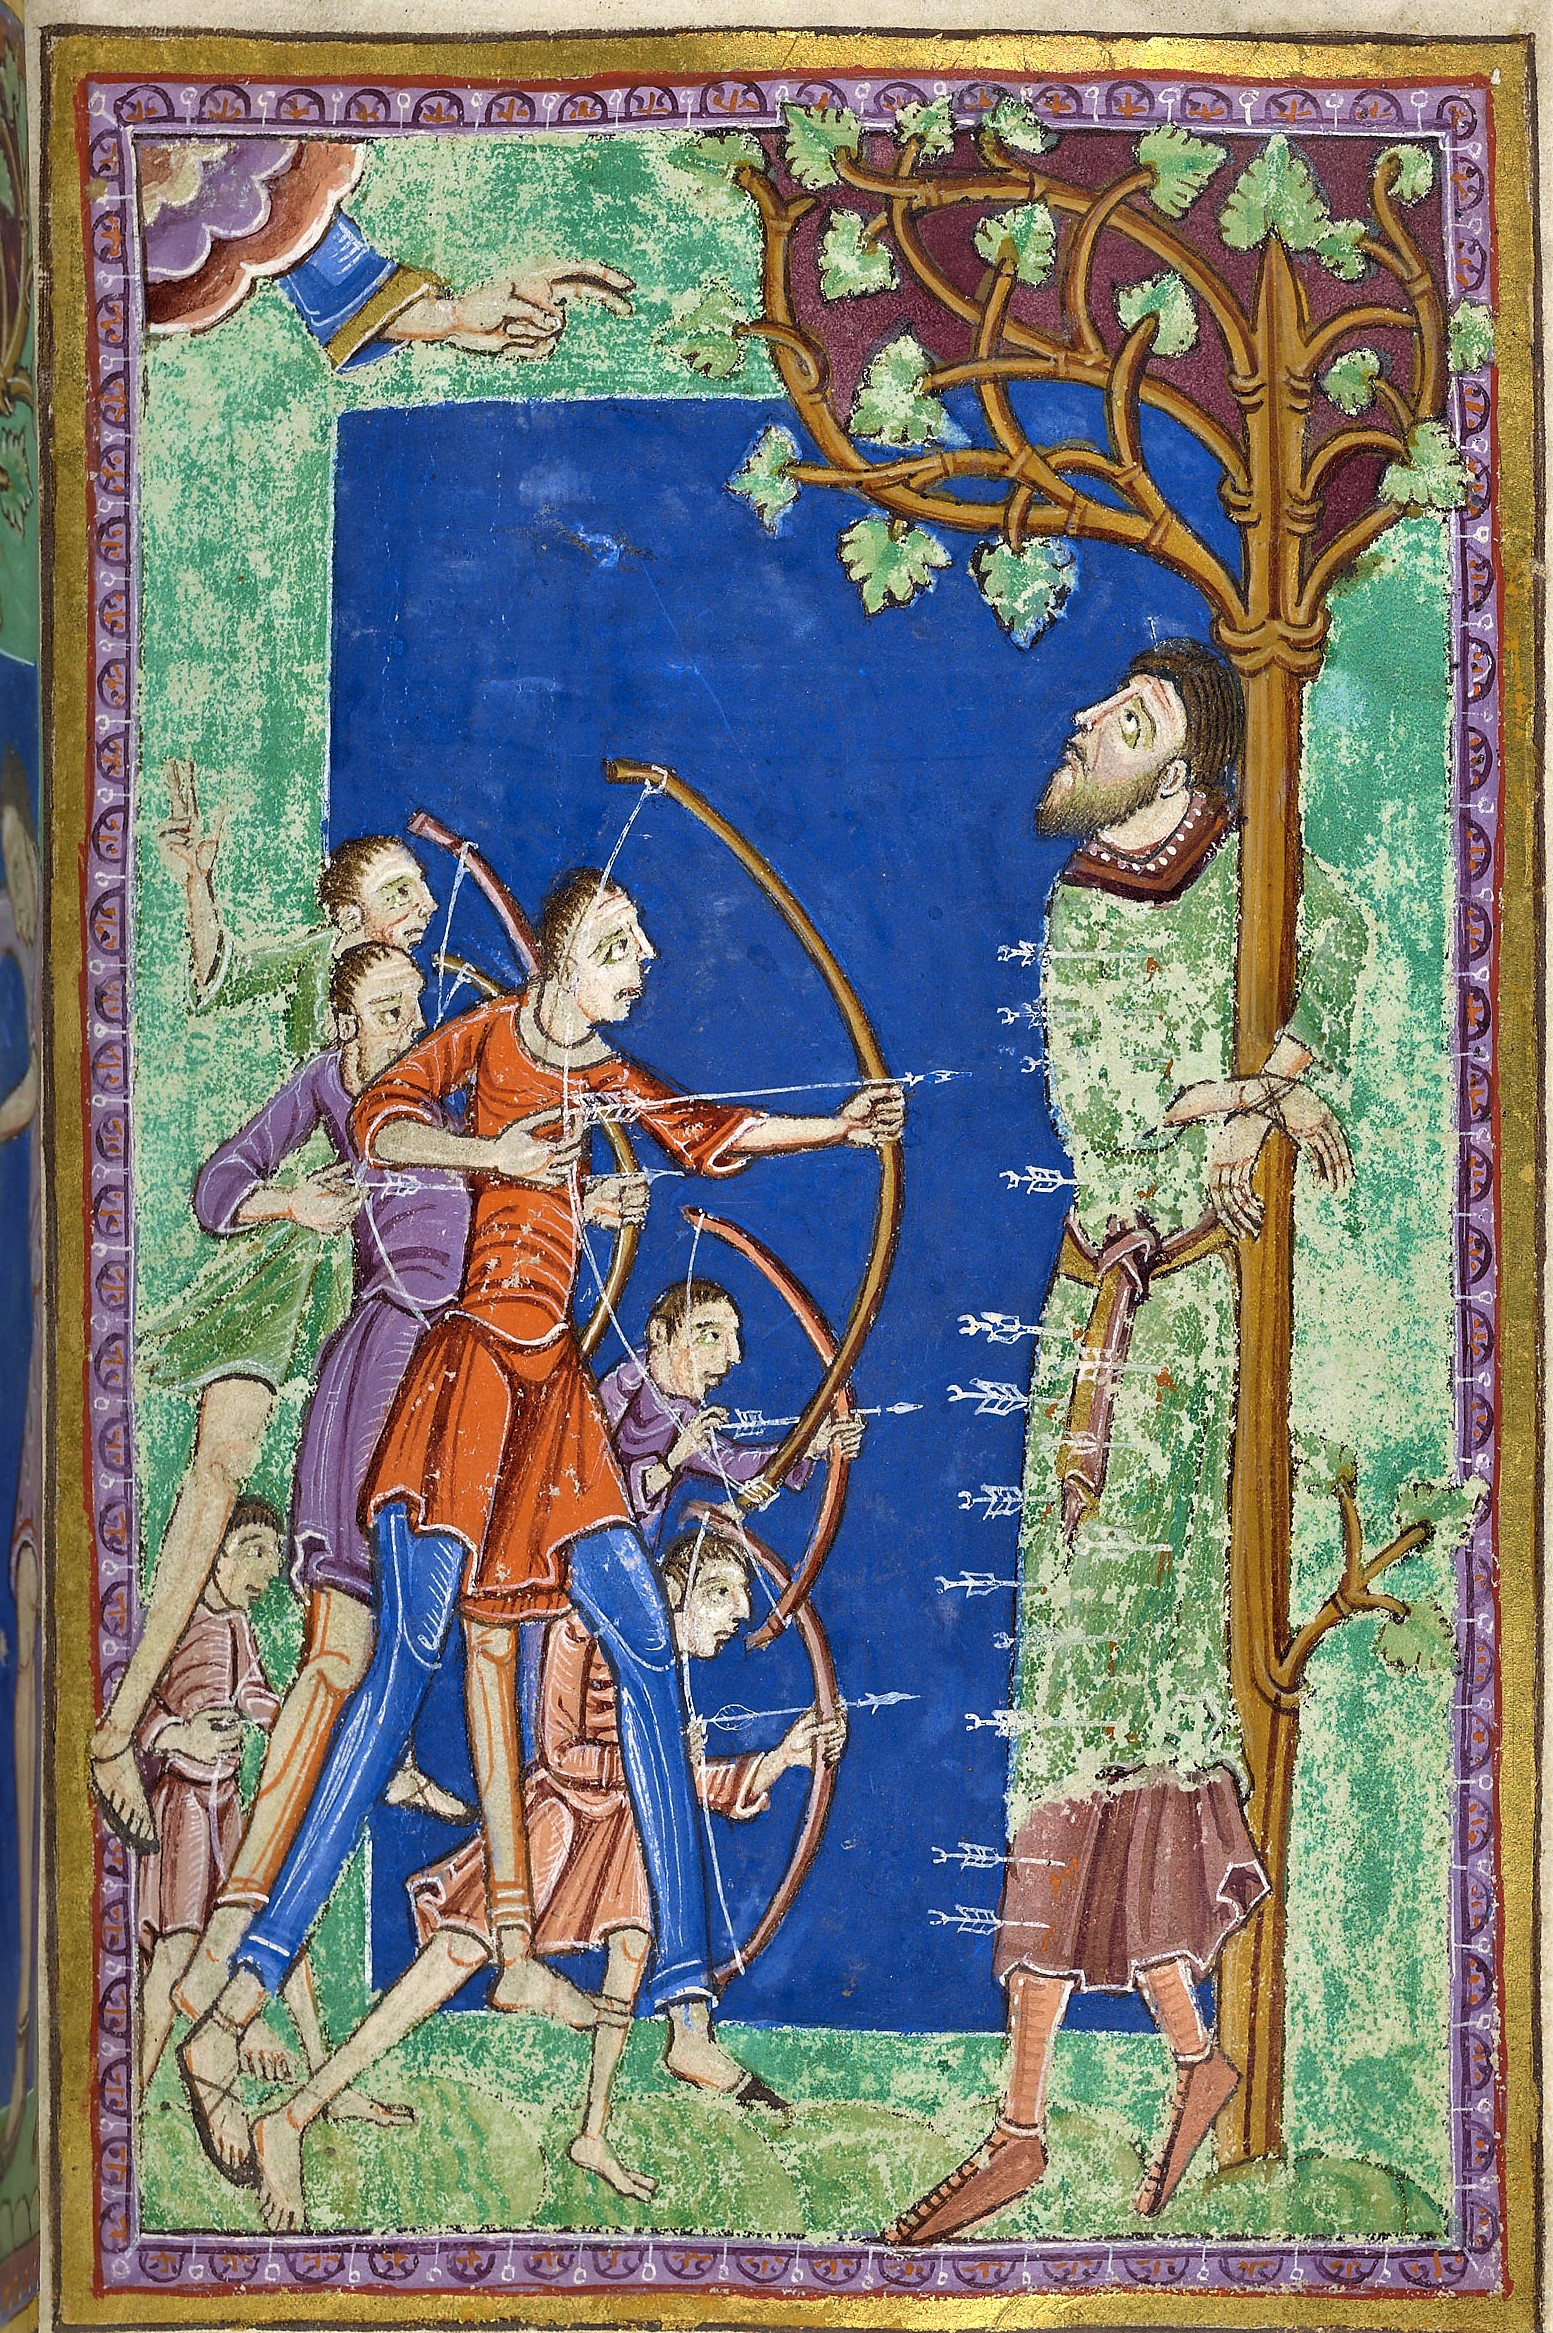 Illustration of the death of Edmund the Martyr by the Vikings (20 November 869)